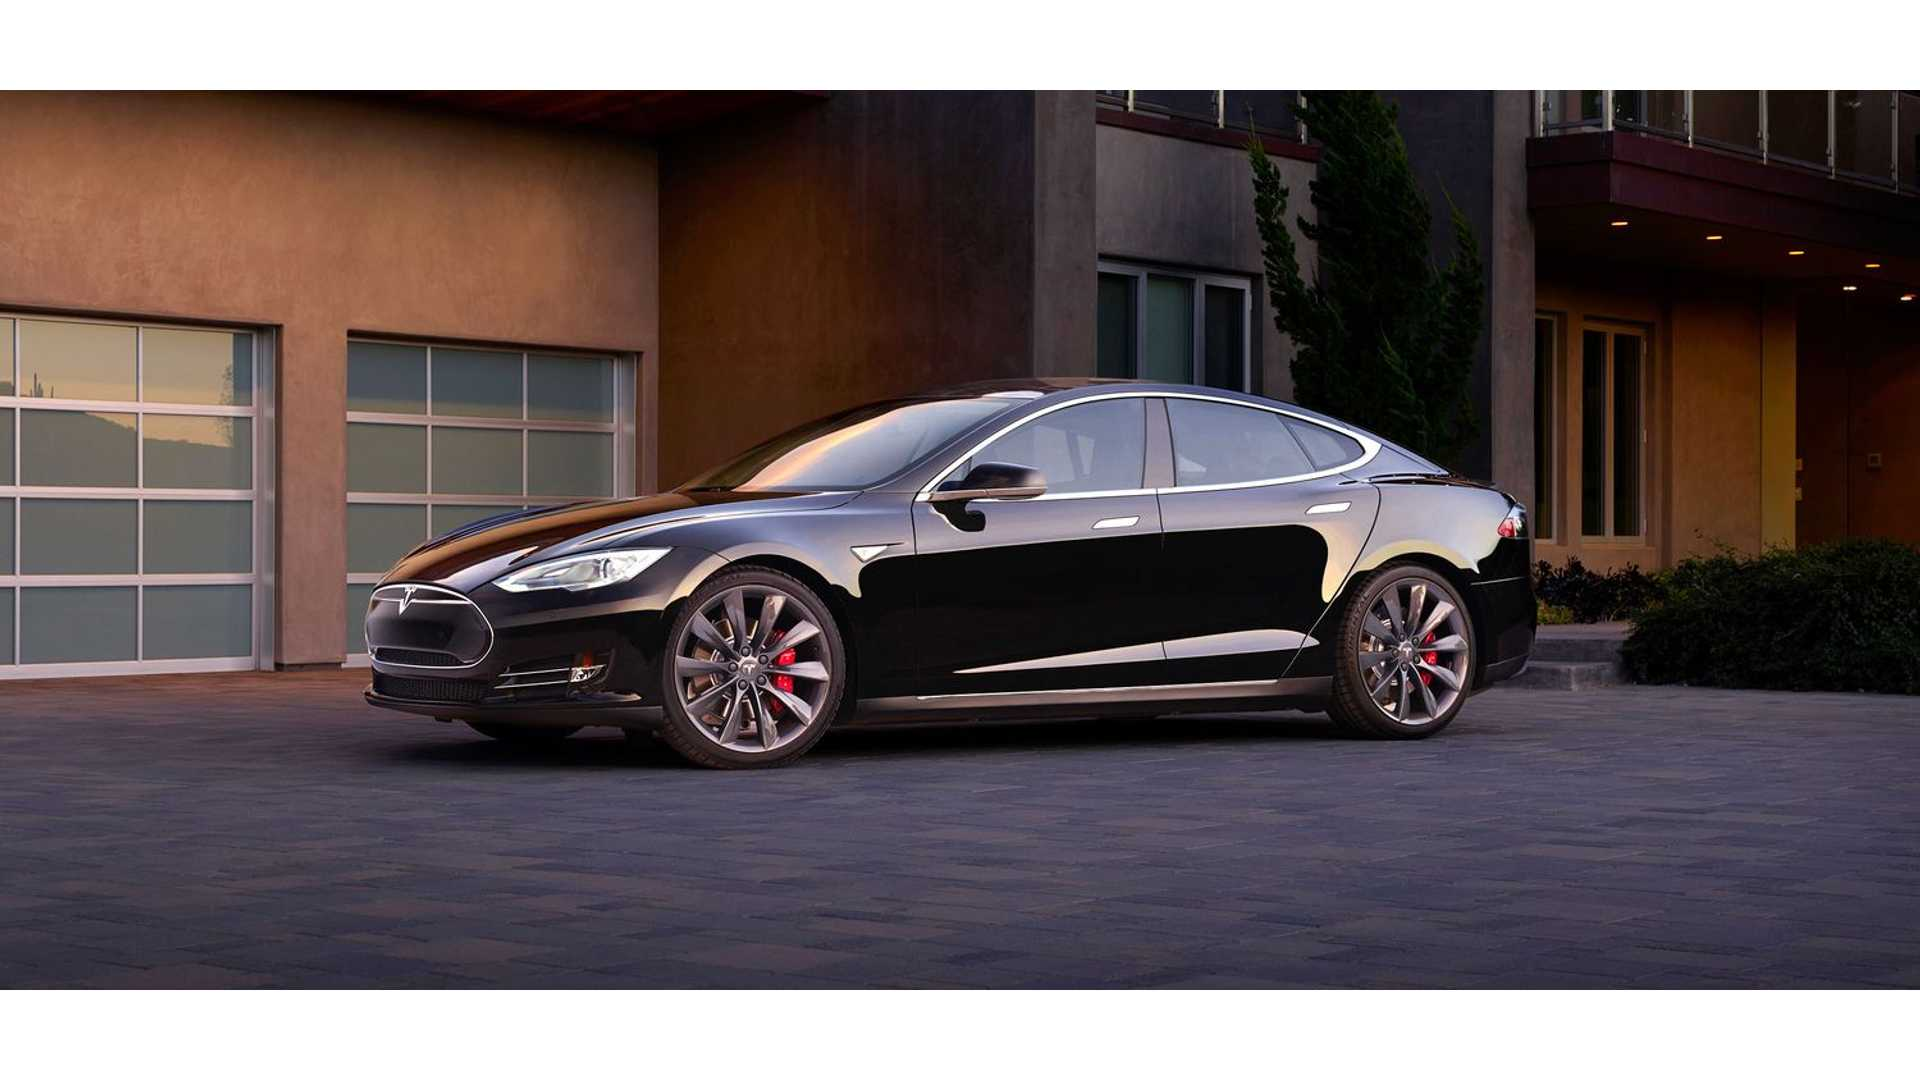 How Does A 2012 Tesla Model S Stack Up Against A 2019 Audi E-Tron?